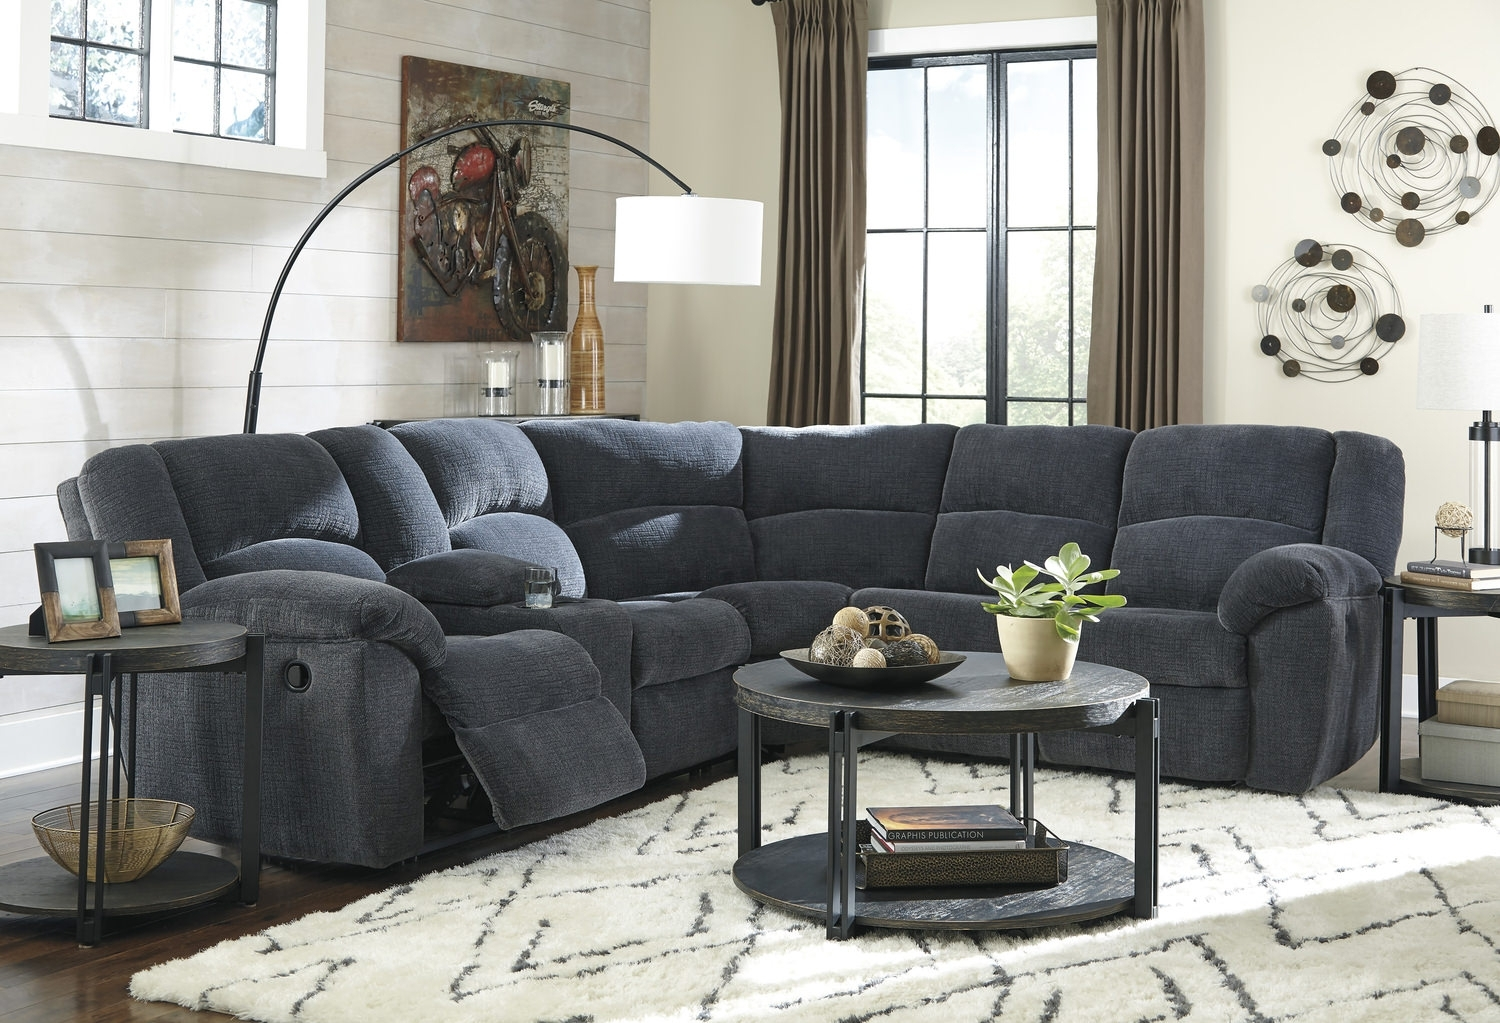 Texas 2 Piece Reclining Sectional | Hom Furniture With Regard To St Cloud Mn Sectional Sofas (Image 10 of 10)